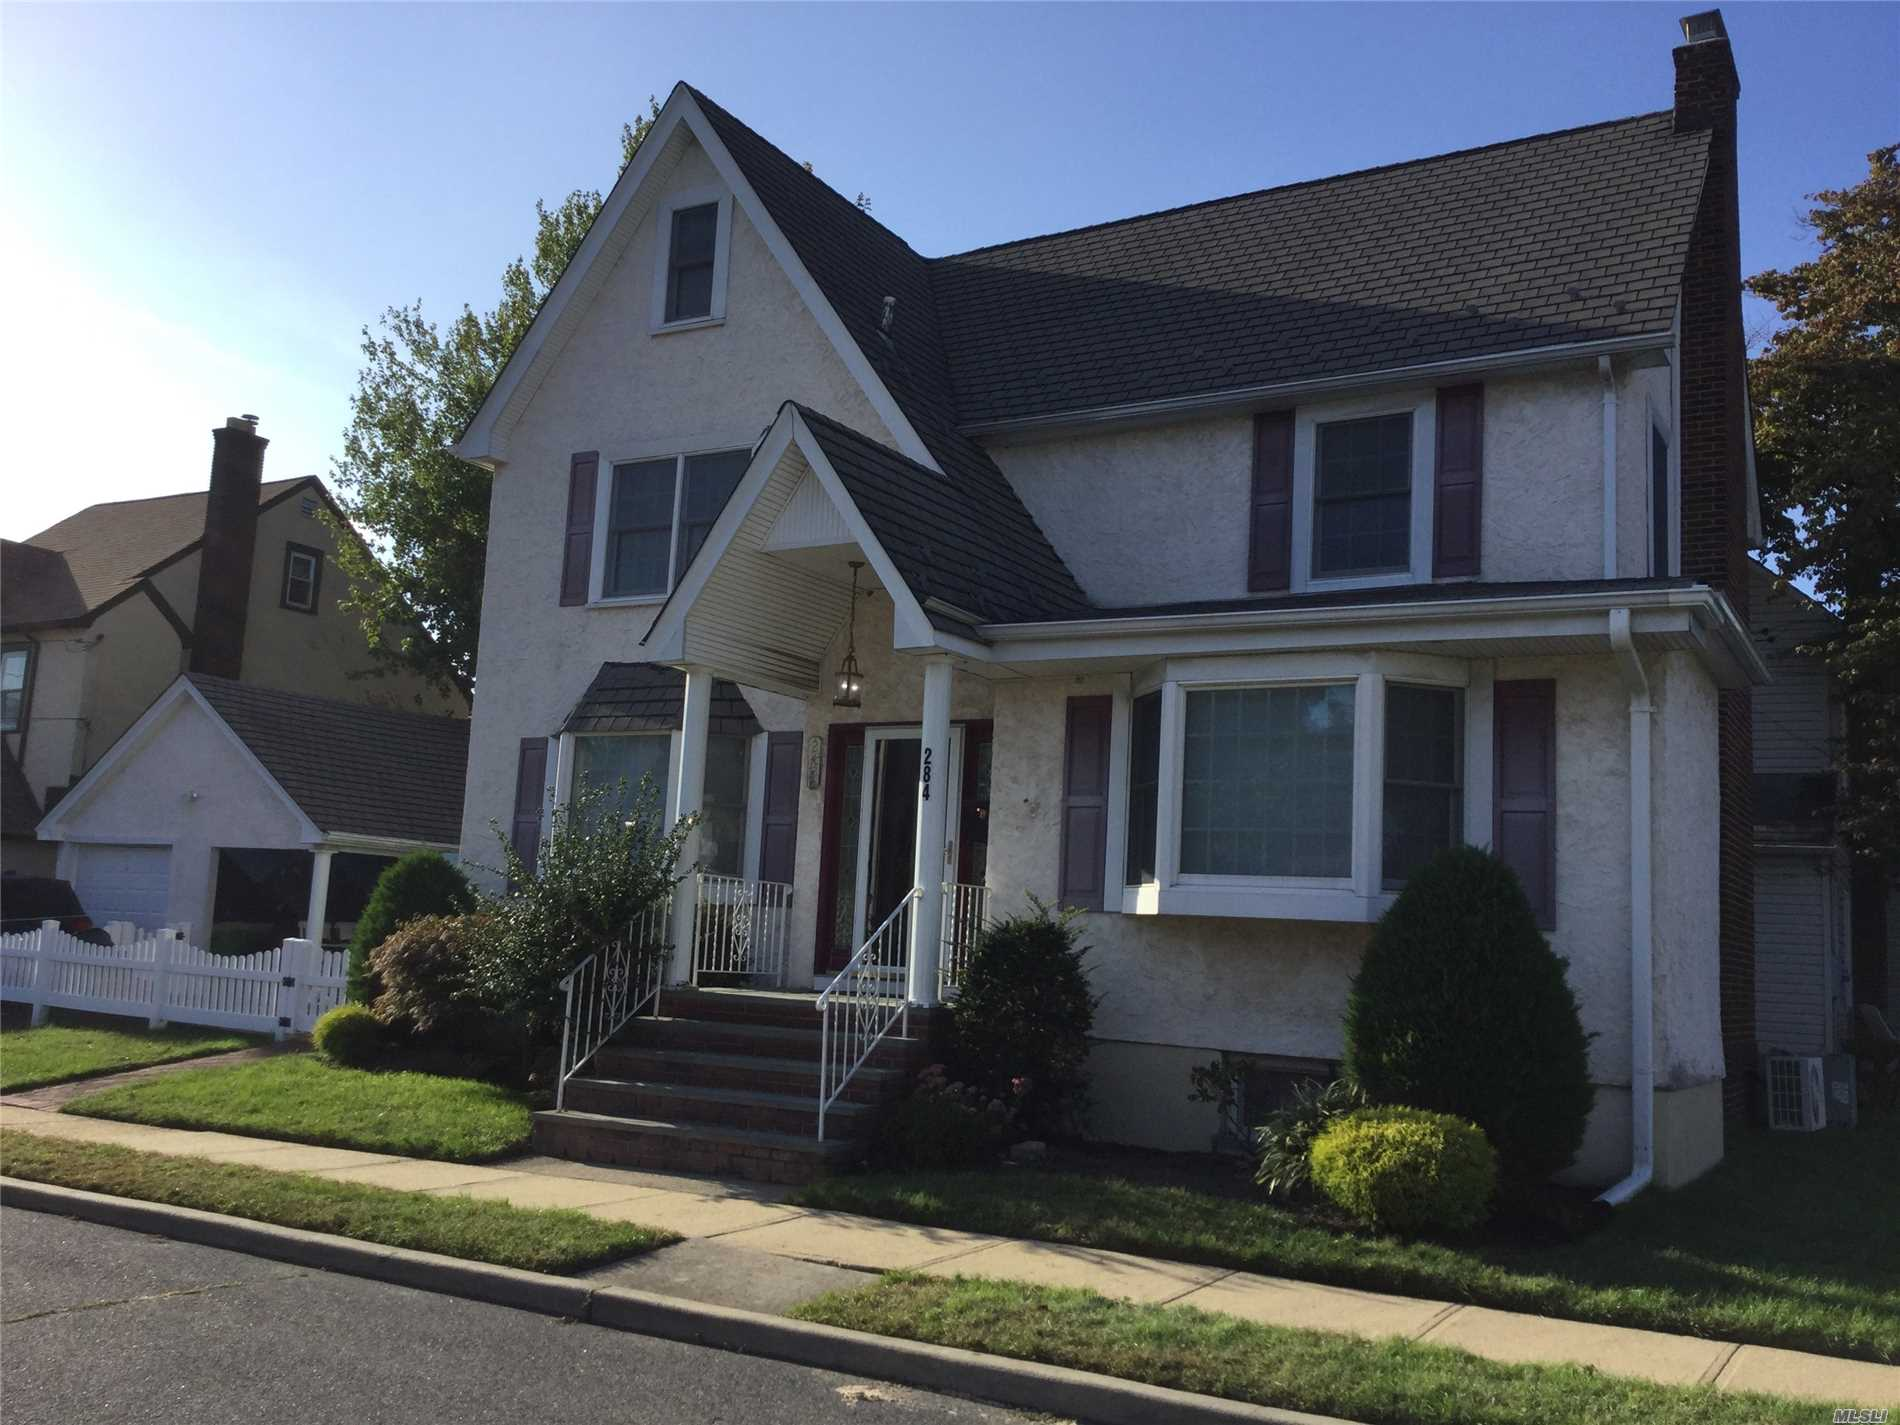 5 Bedroom Center Hall Tudor Colonial With Hardwood Floors Throughout. Main Floor Den, All Good Sized Bedrooms. Master W/ Fbth And Full Wall Of Closets. Central Air. Updated Electric. Completely Finished Basement.